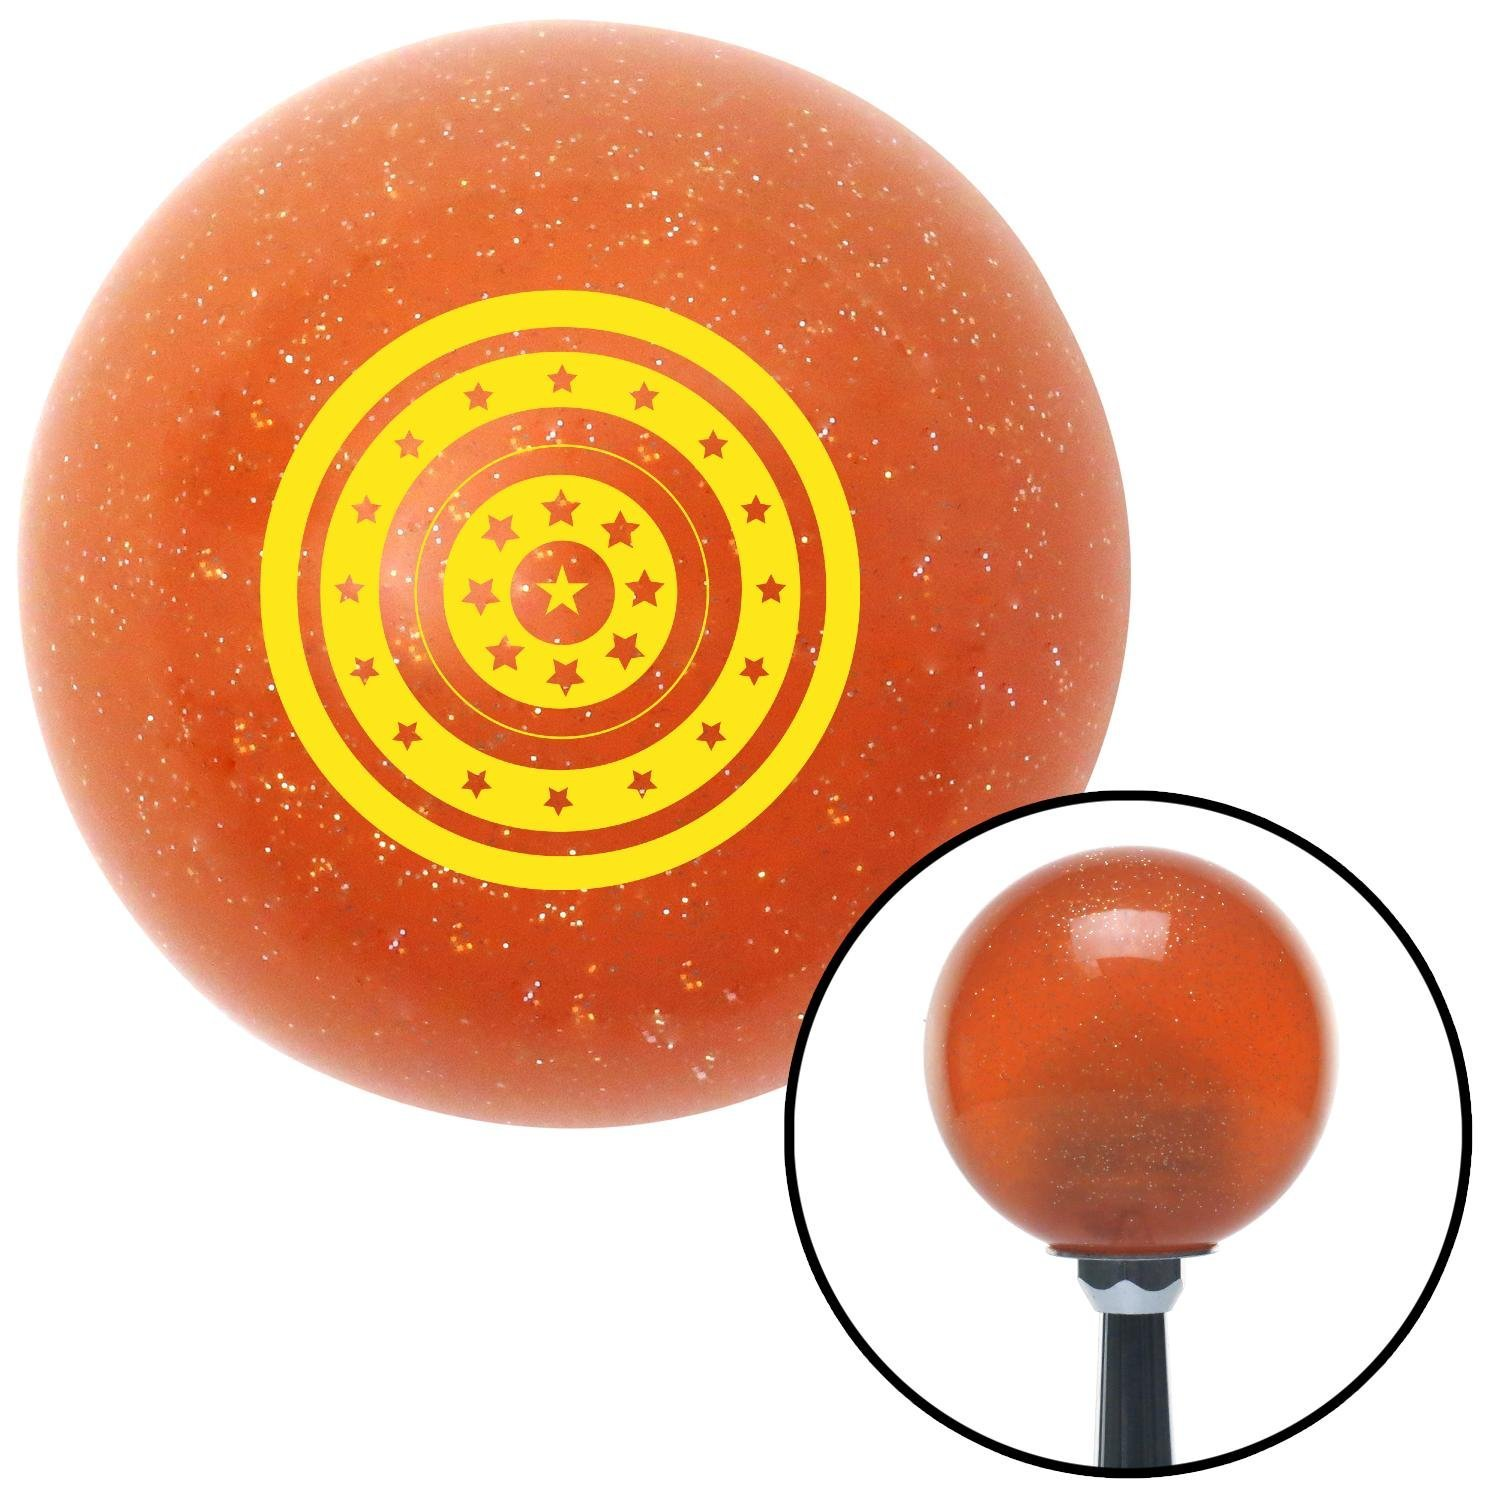 American Shifter 44889 Orange Metal Flake Shift Knob with 16mm x 1.5 Insert Yellow Star Target